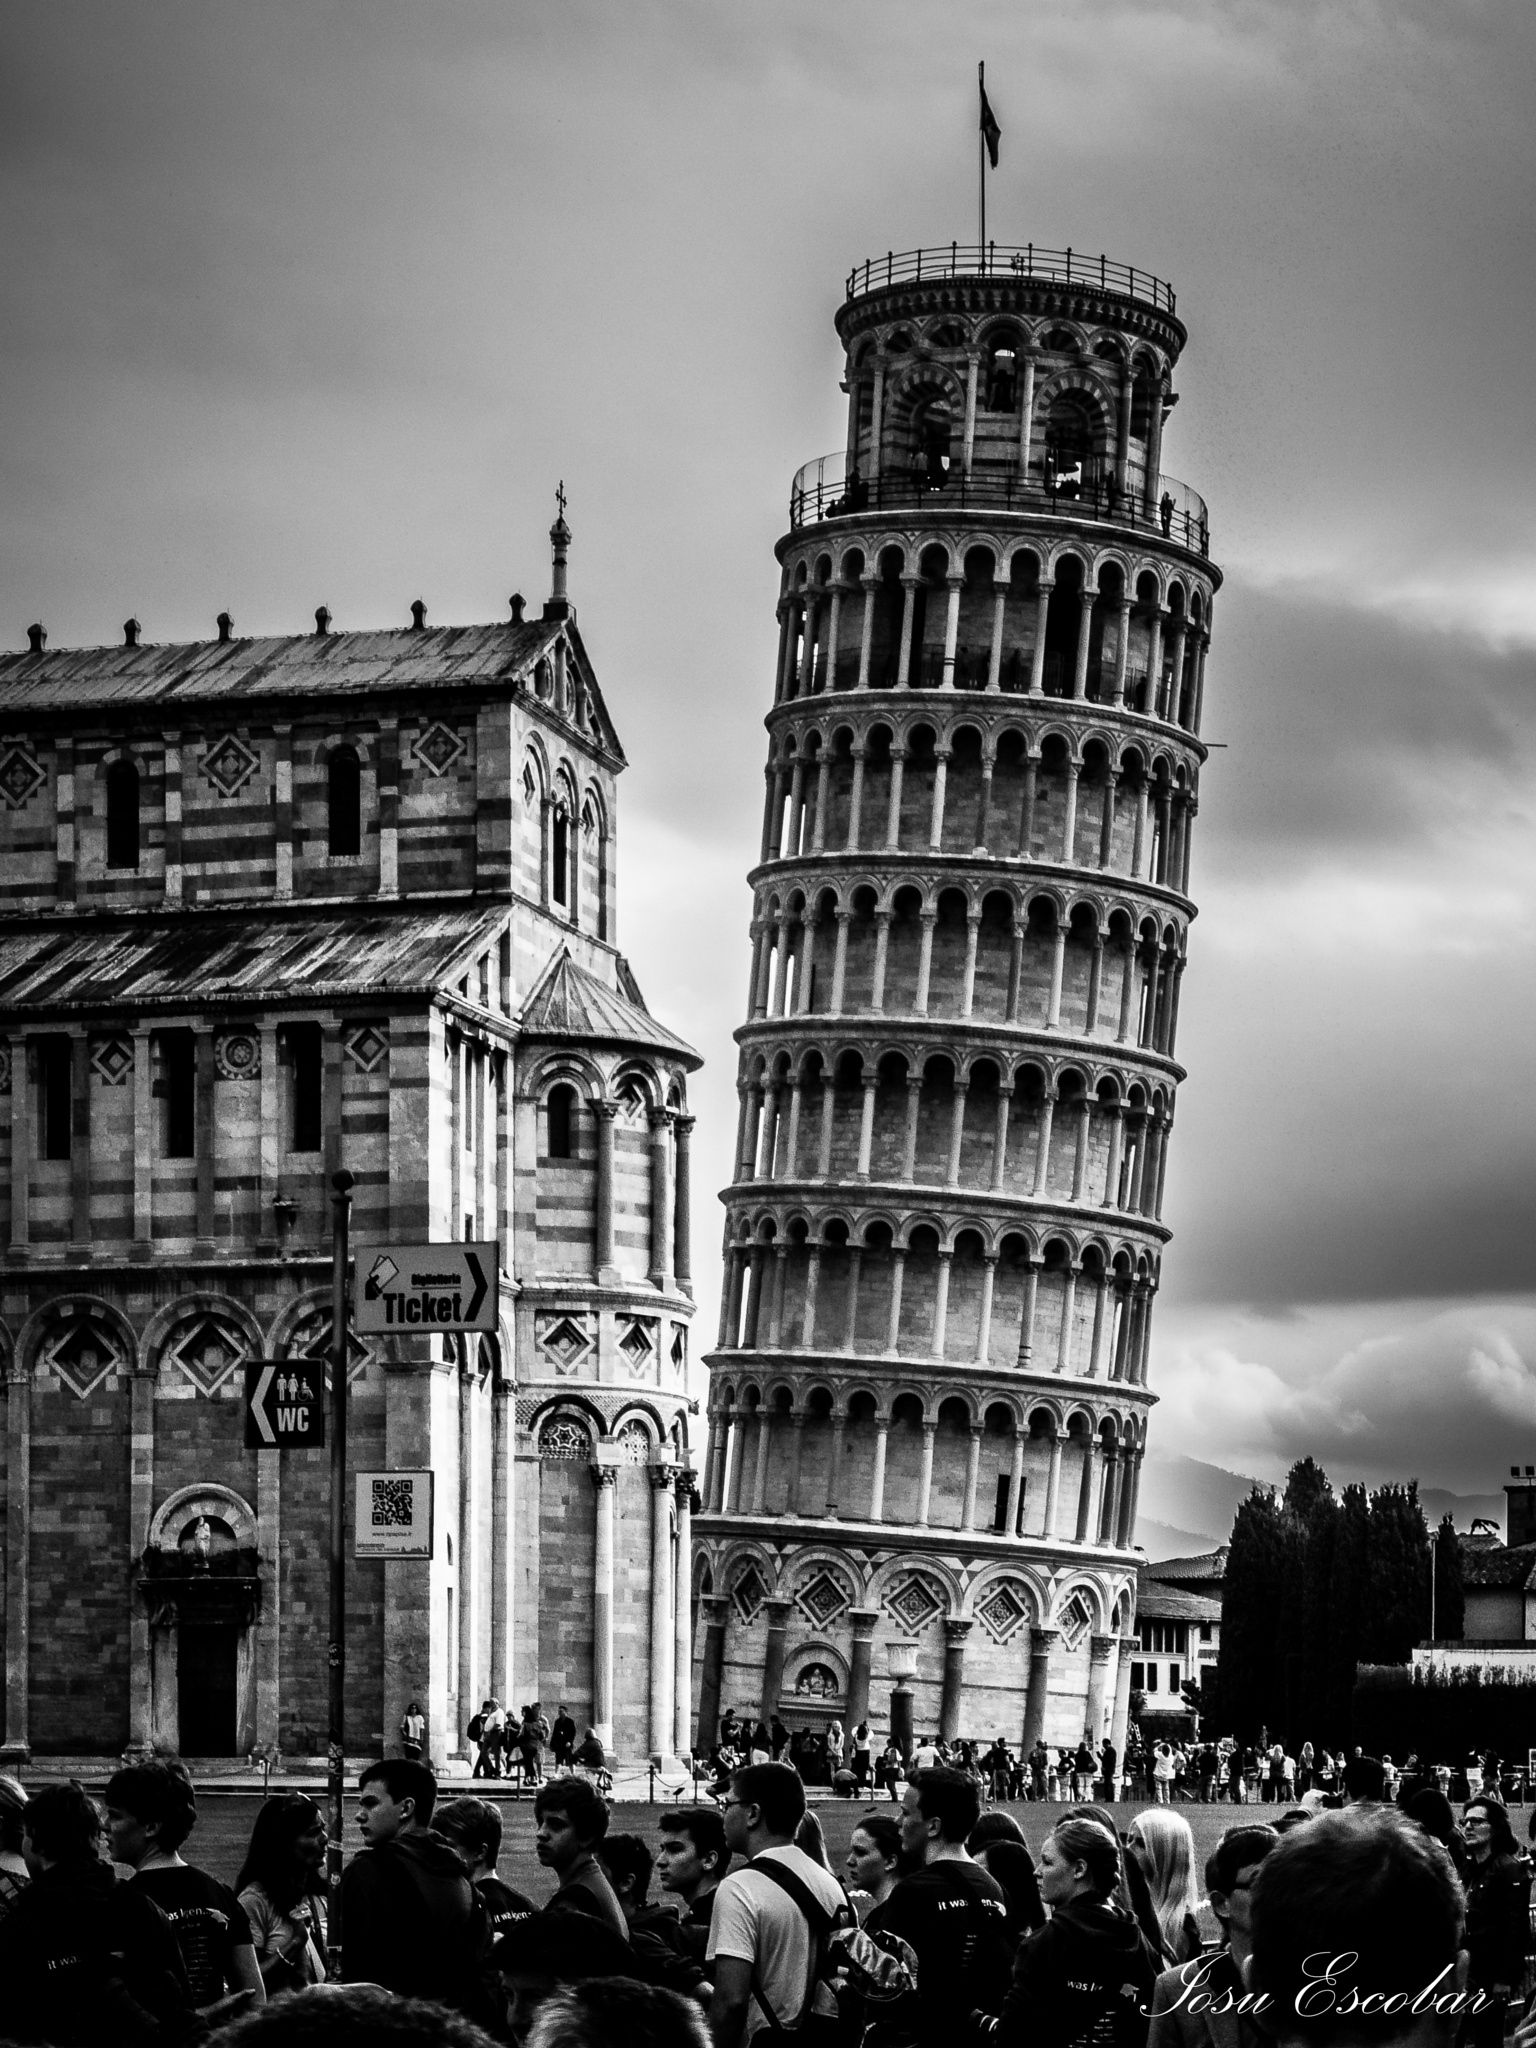 steps in leaning tower of pisa leaning tower of pisa by iosu escobar perez on 500px torres pisa steps of in leaning tower